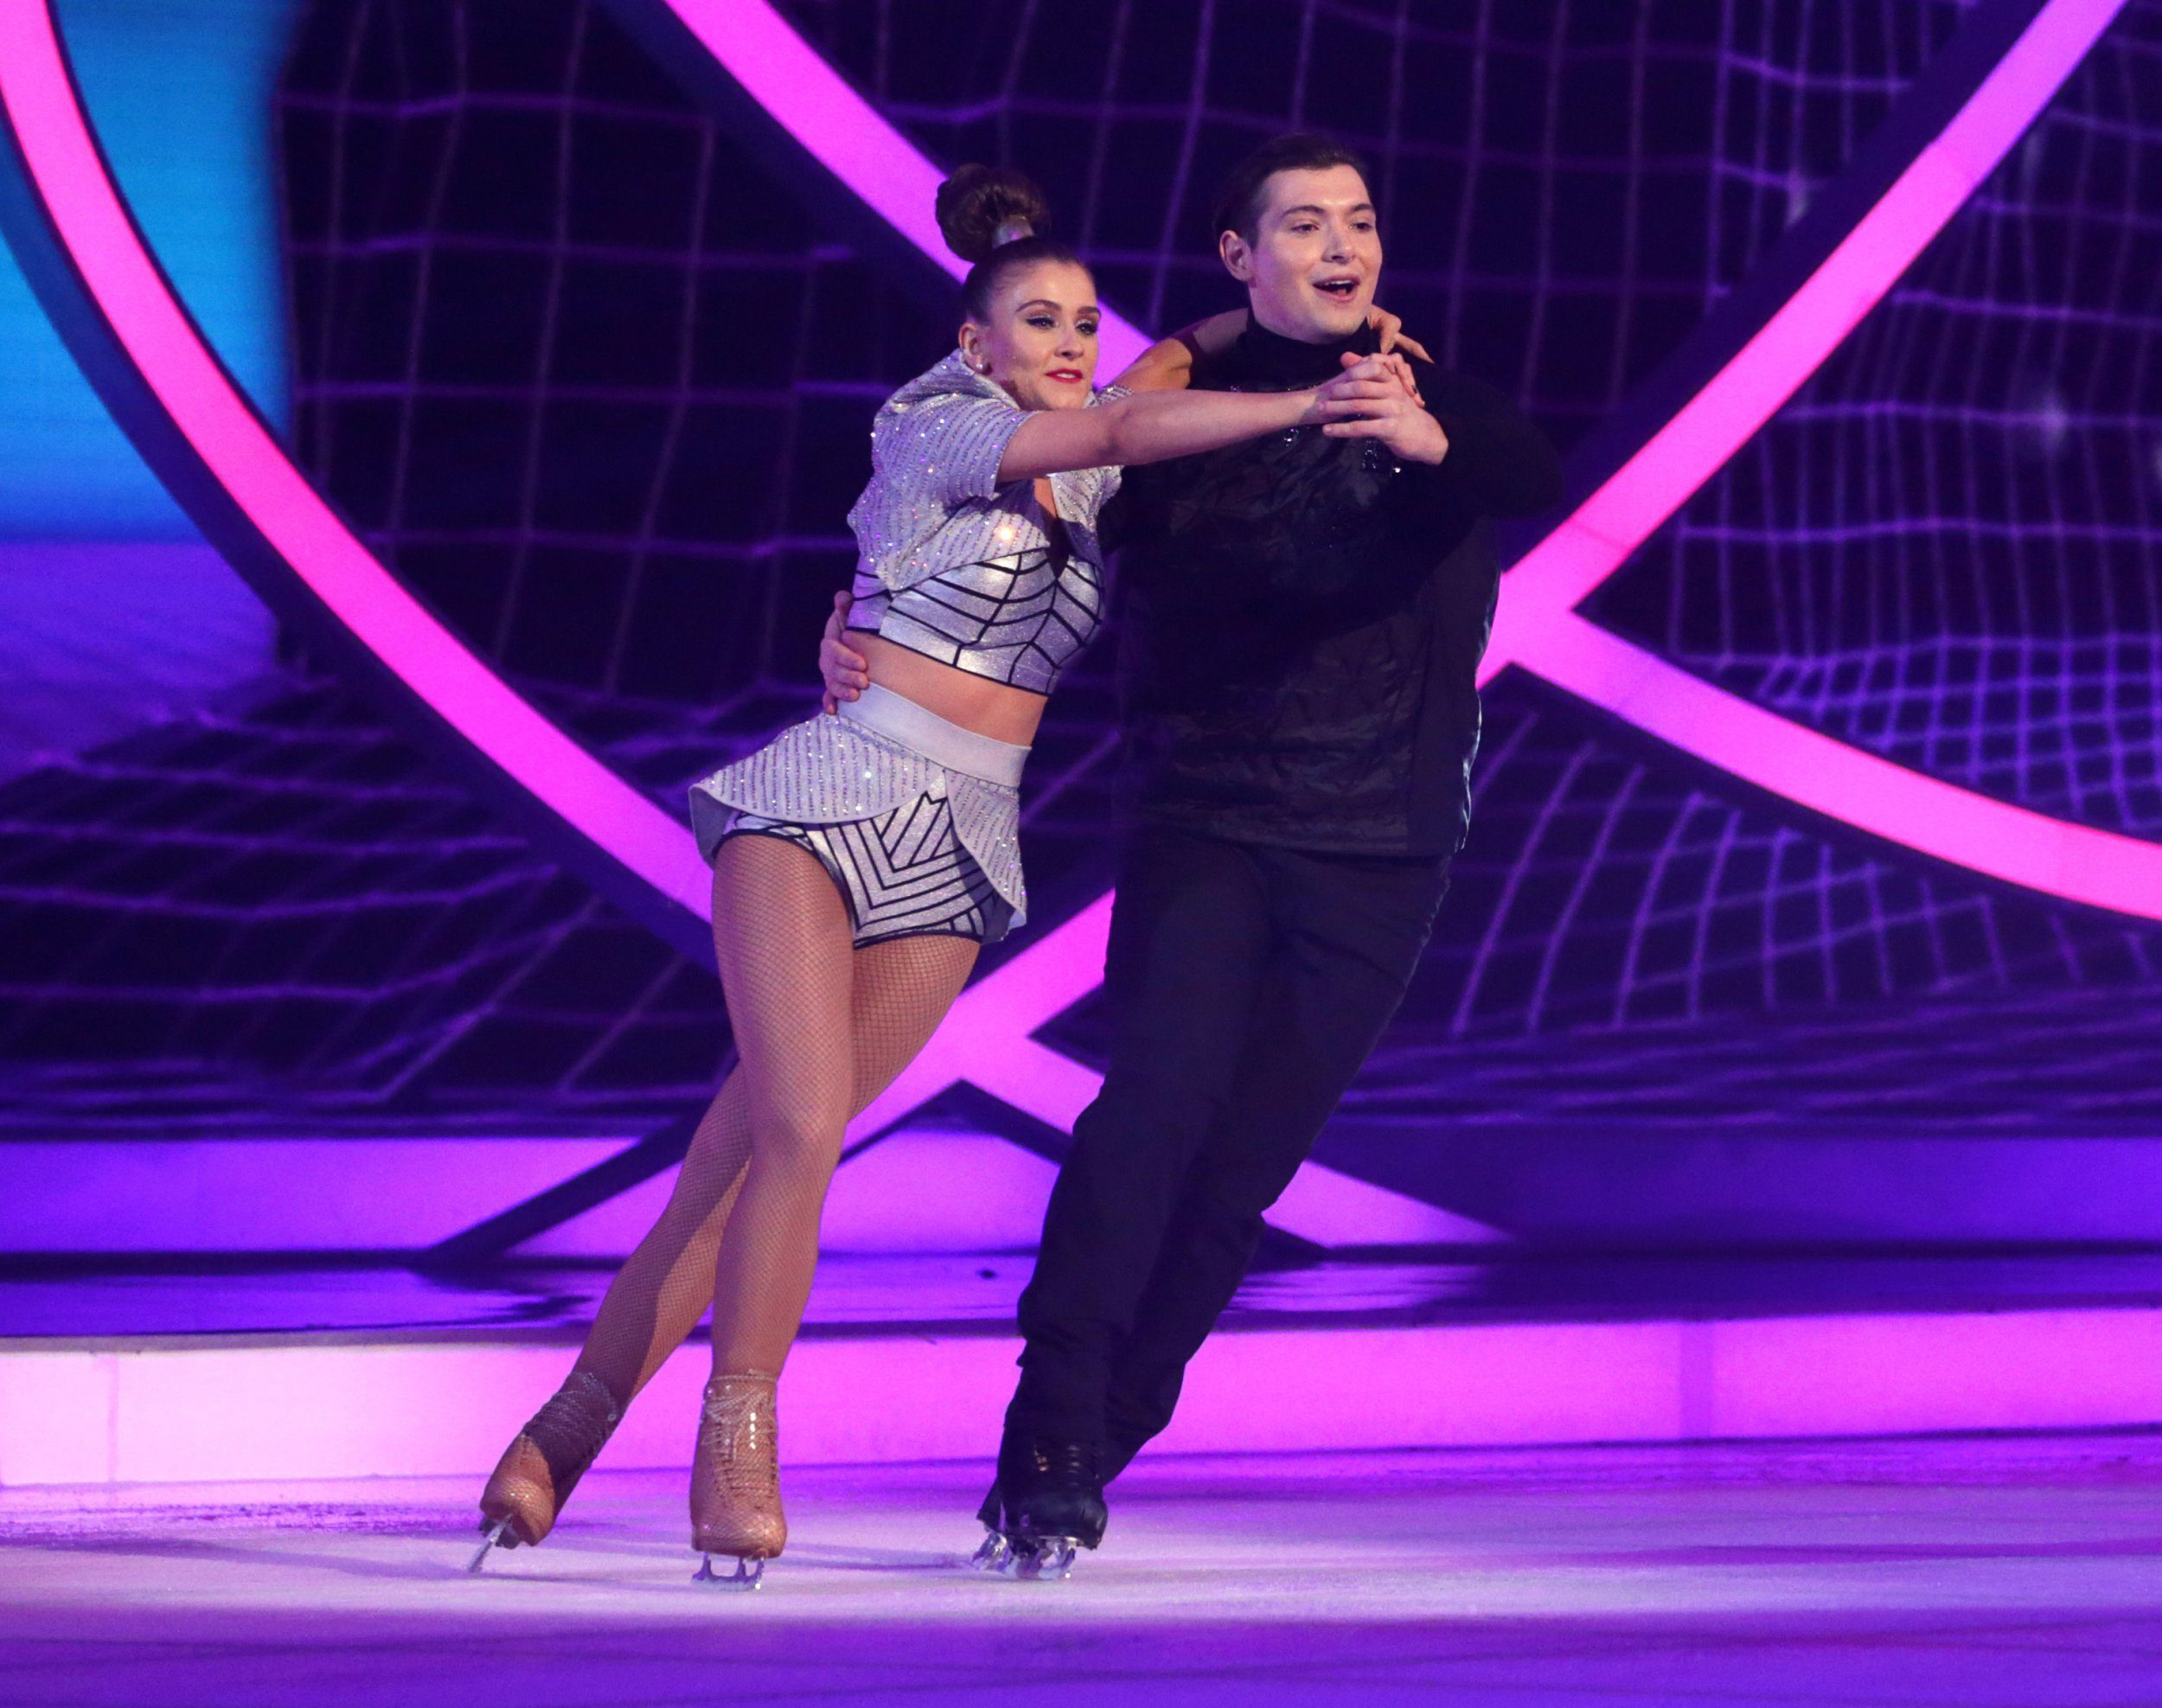 Brooke Vincent vows to win Dancing On Ice for 'girls who aren't girly'